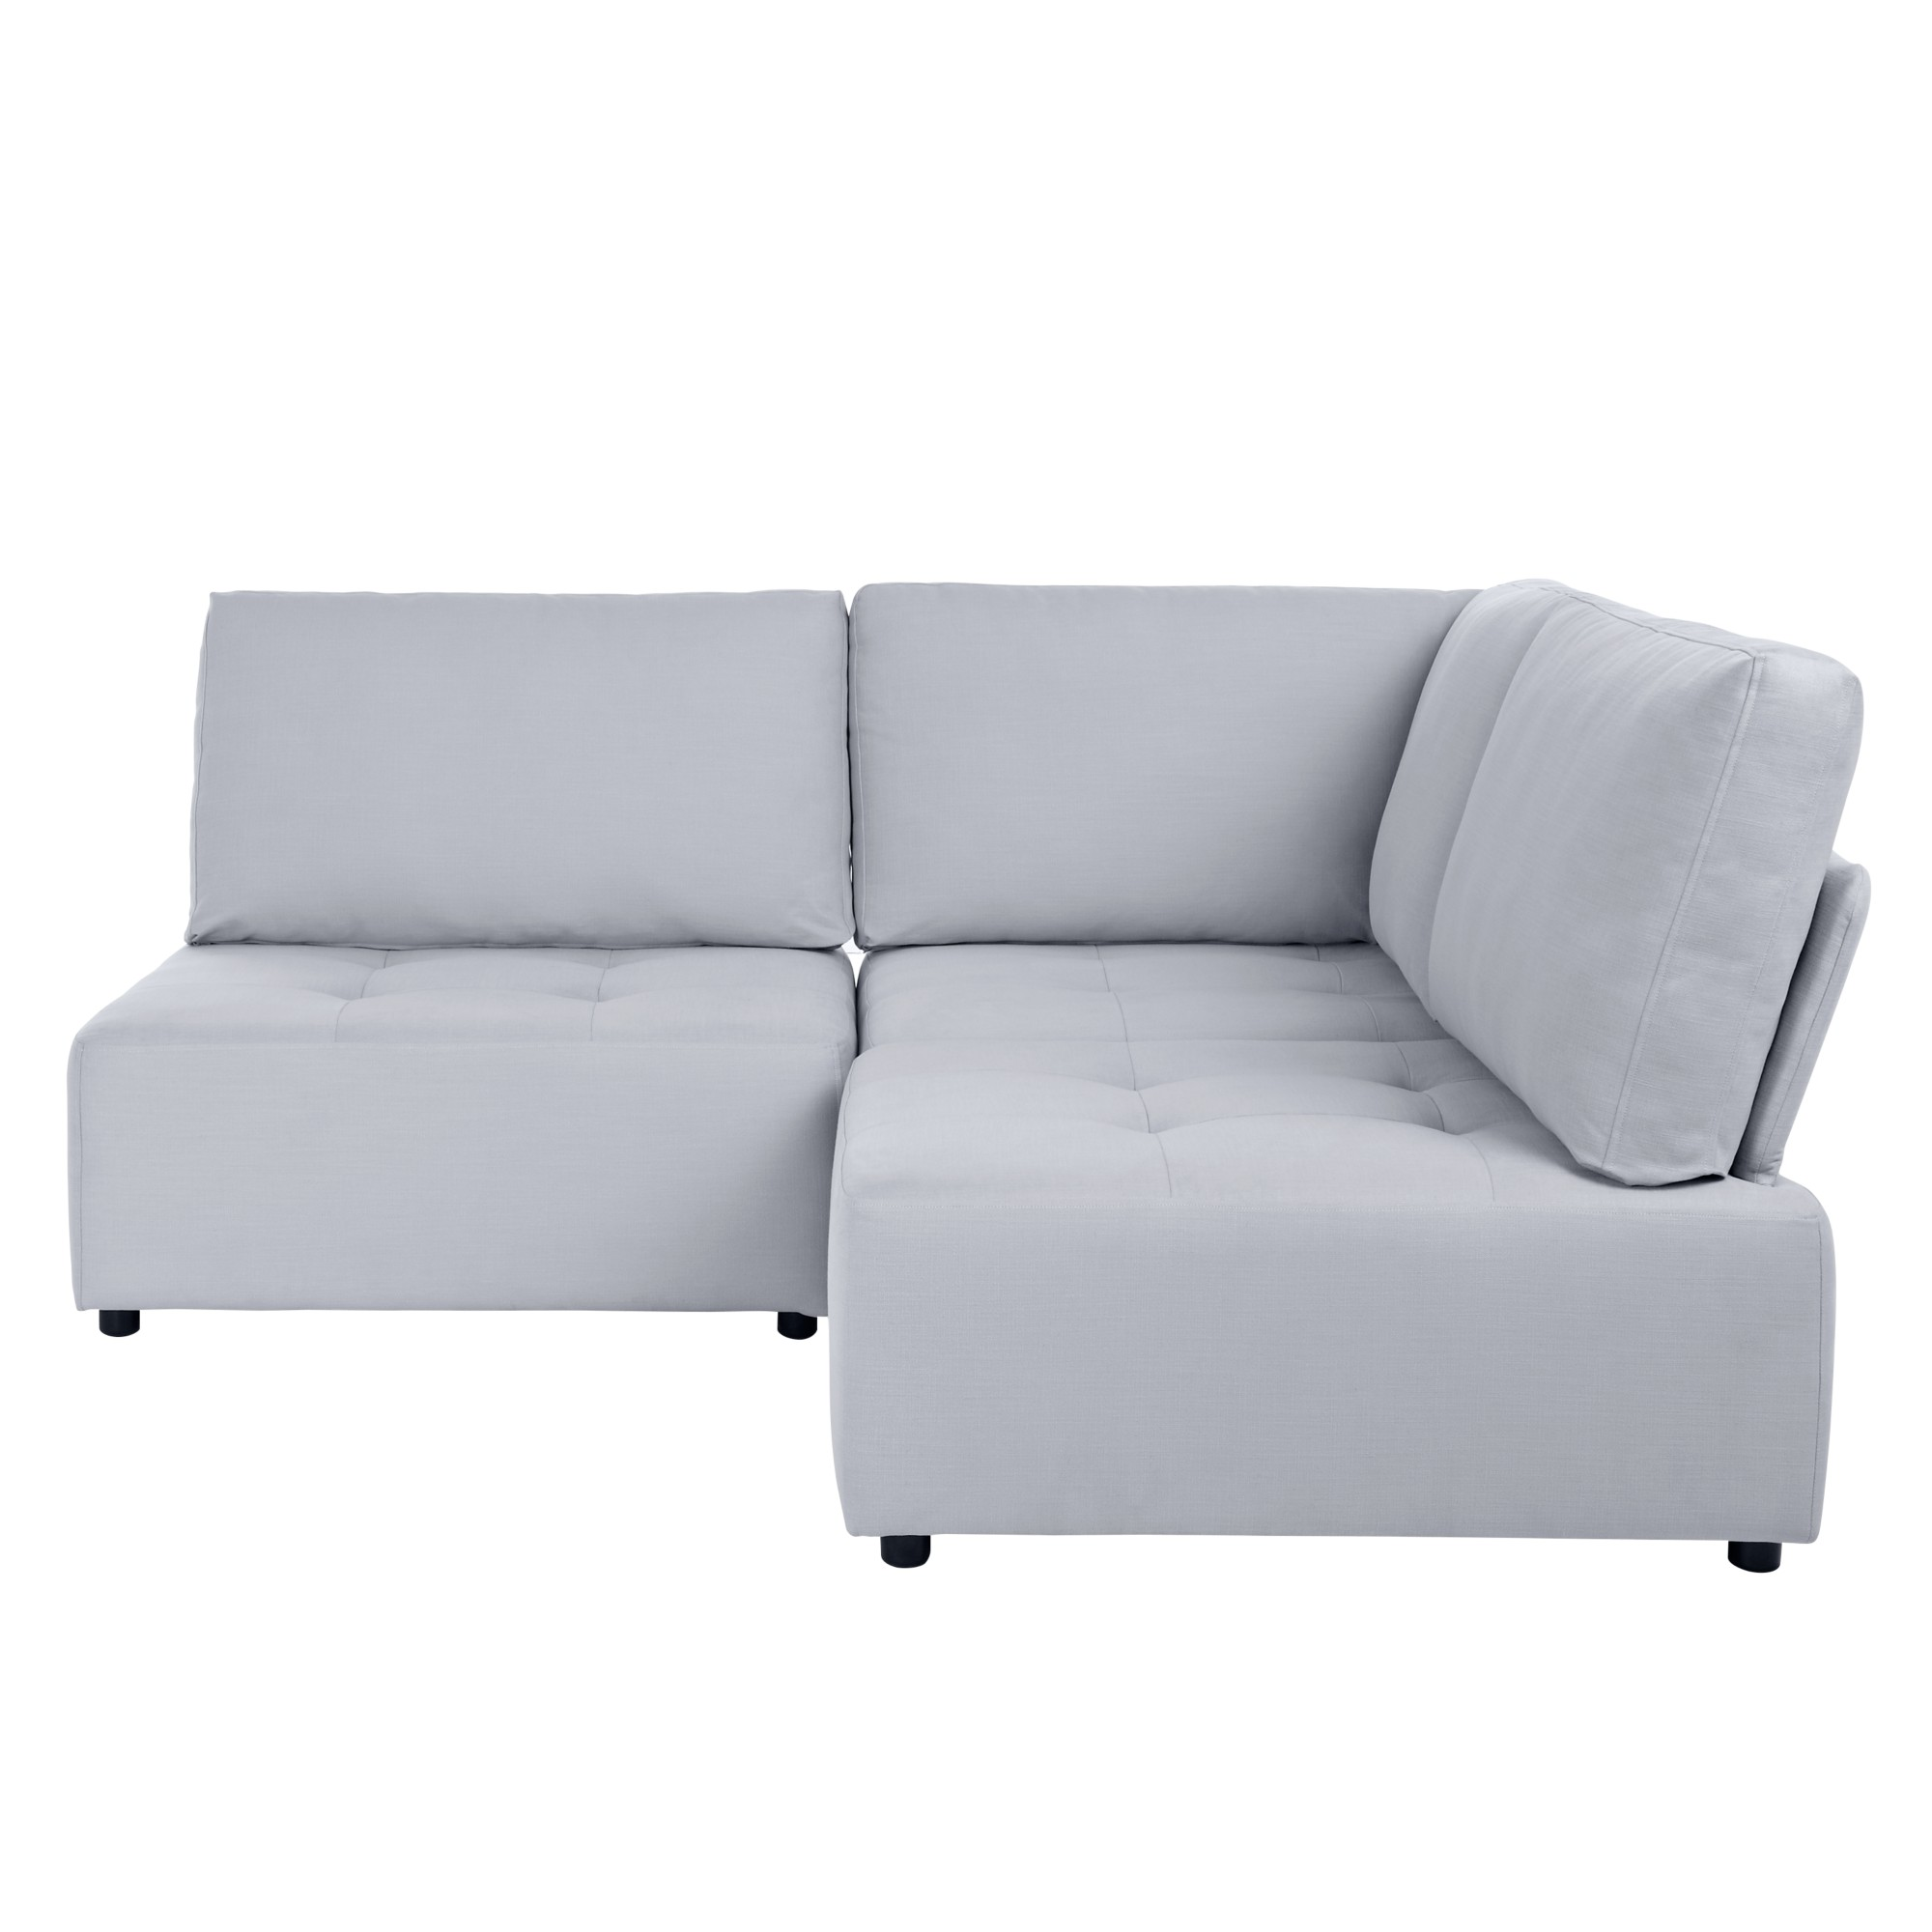 sectional sofas under 1000 00 grey sofa slipcover t cushion house by john lewis flex small corner ...